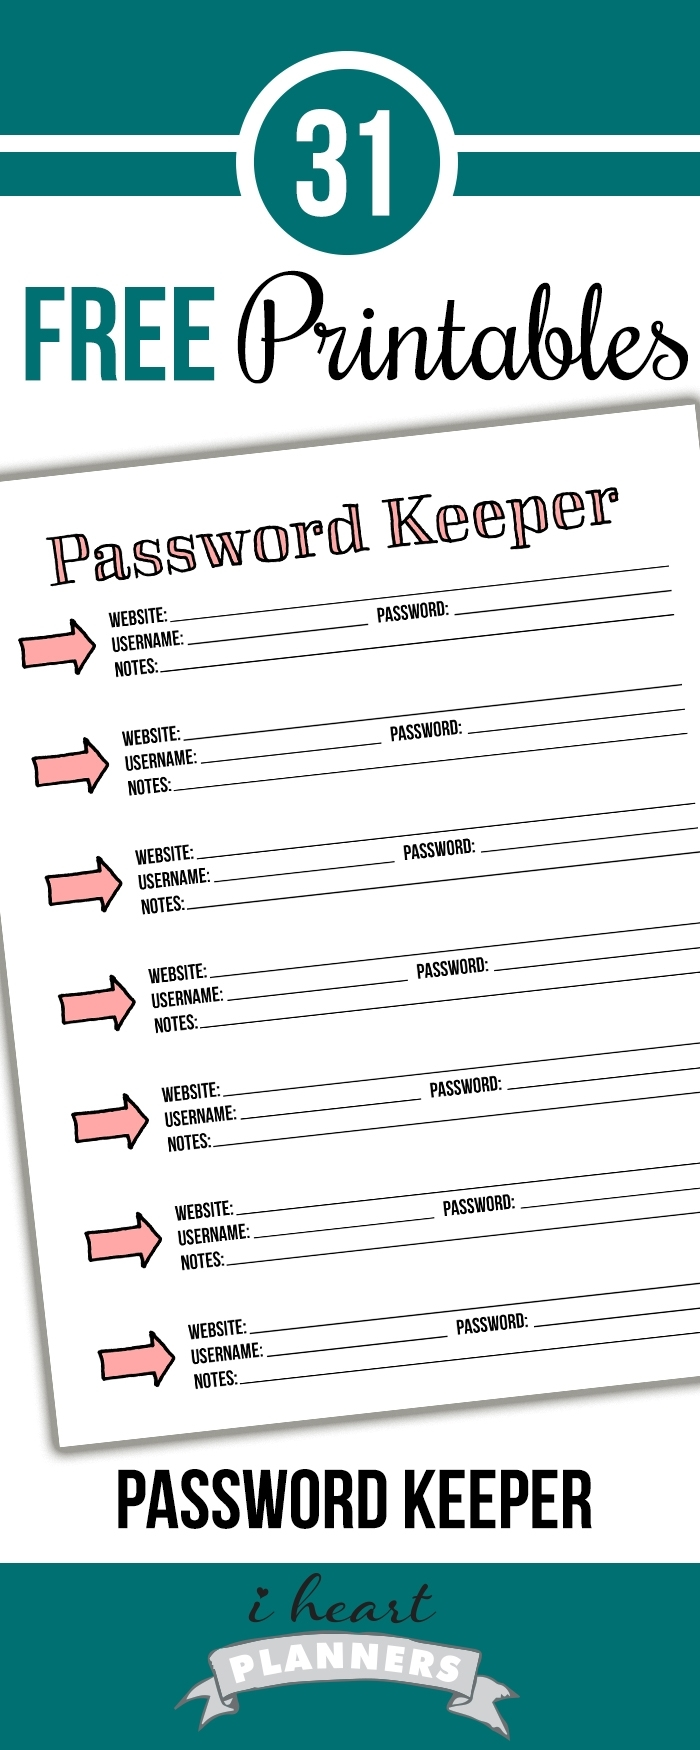 Take Printable Password Tracker Organizer